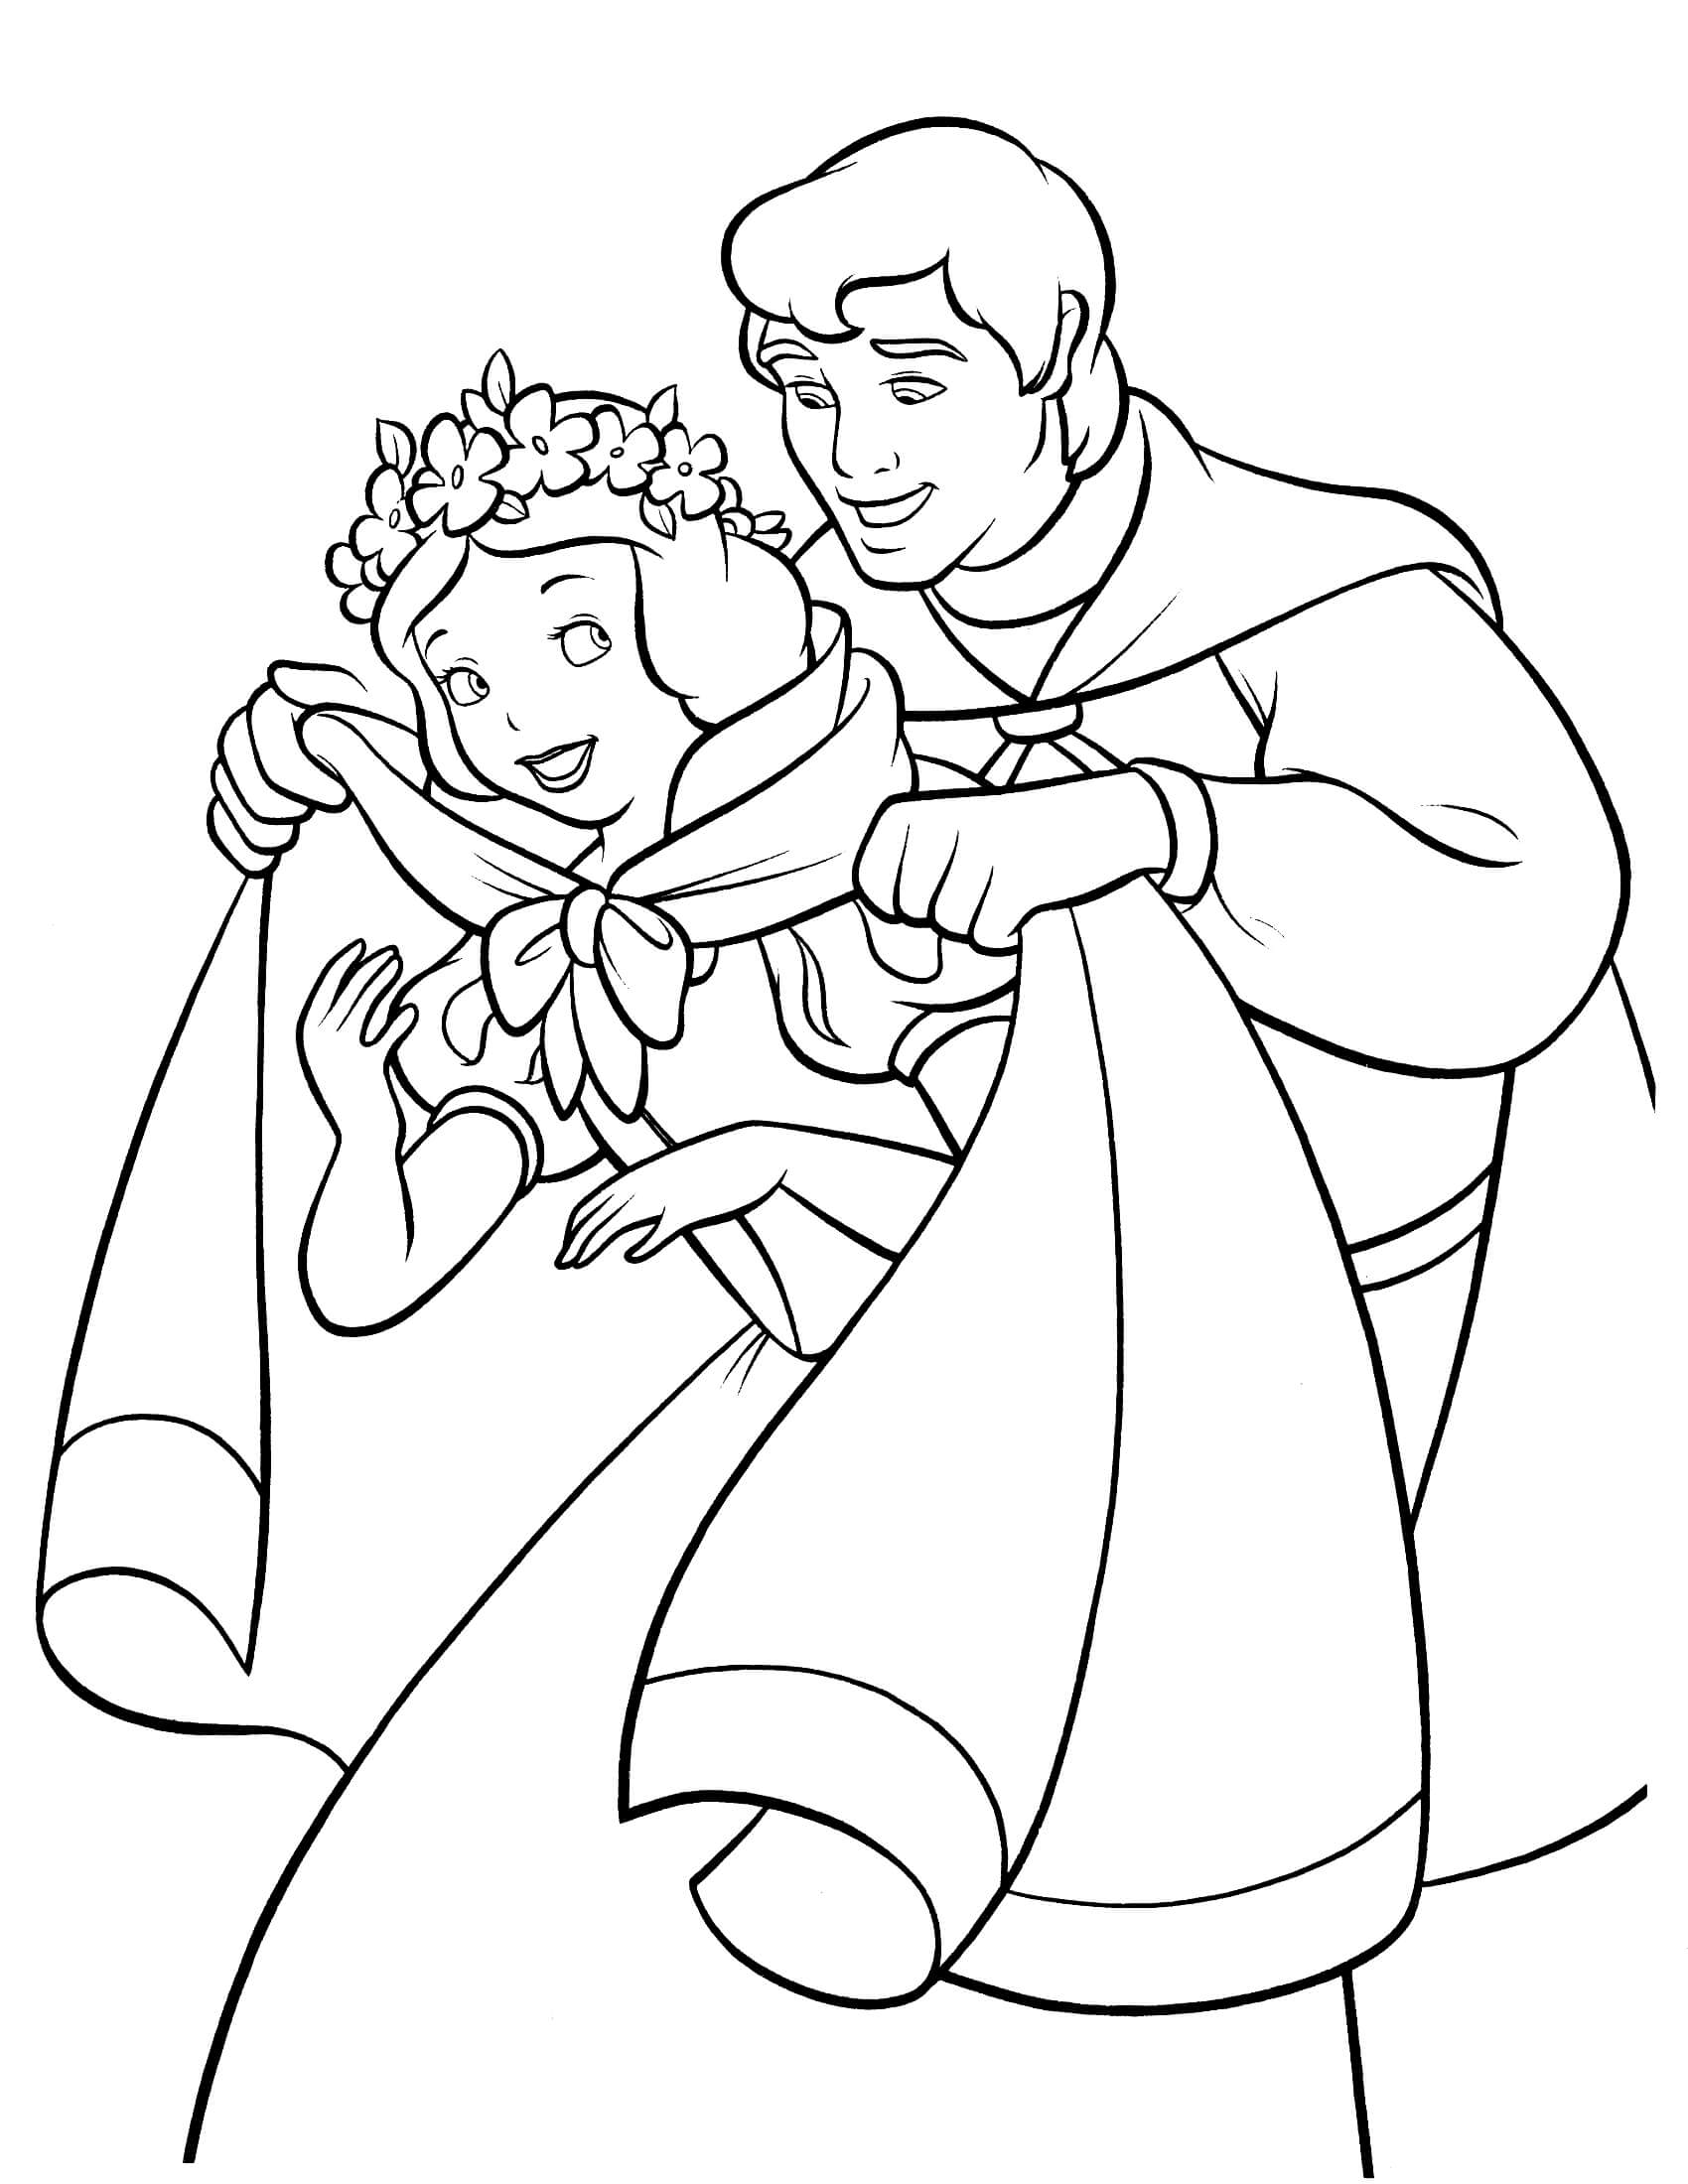 snow color pages snow white coloring pages best coloring pages for kids